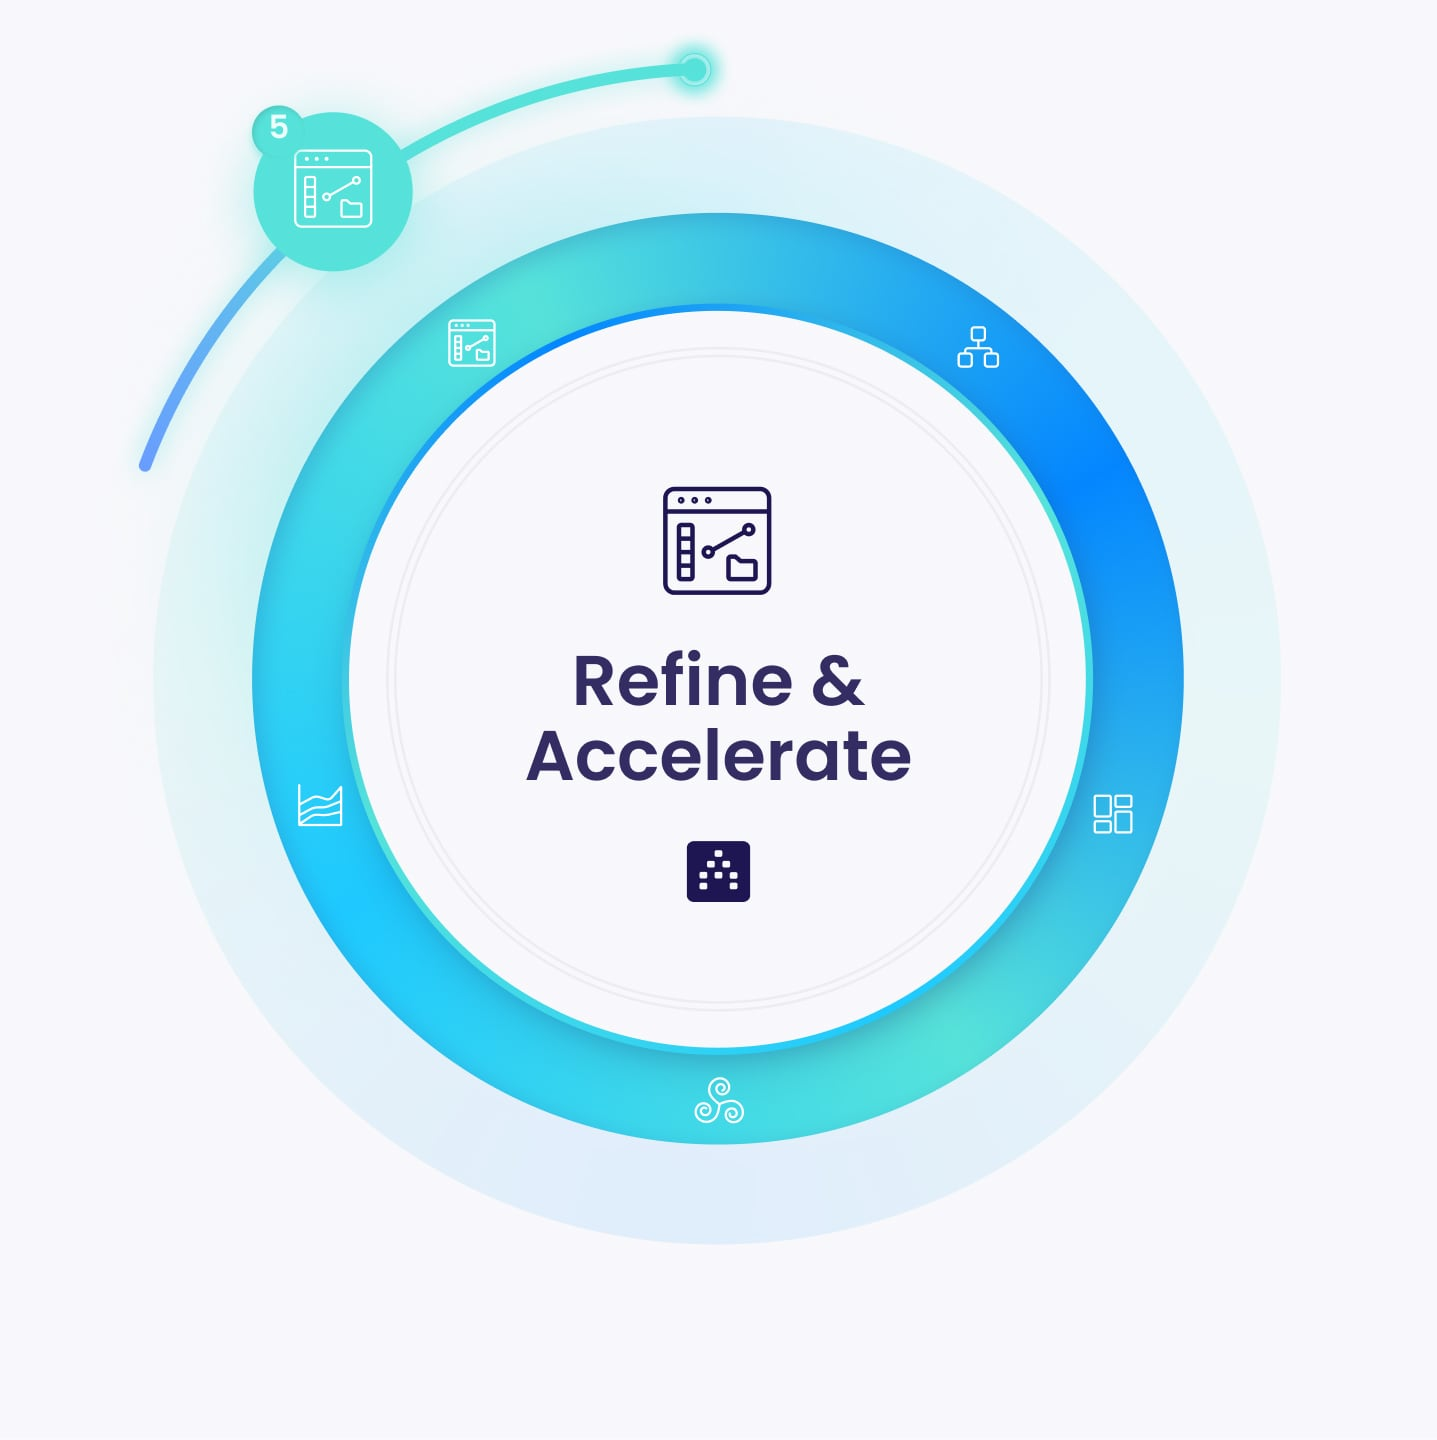 Strategy Framework - Refine and Accelerate